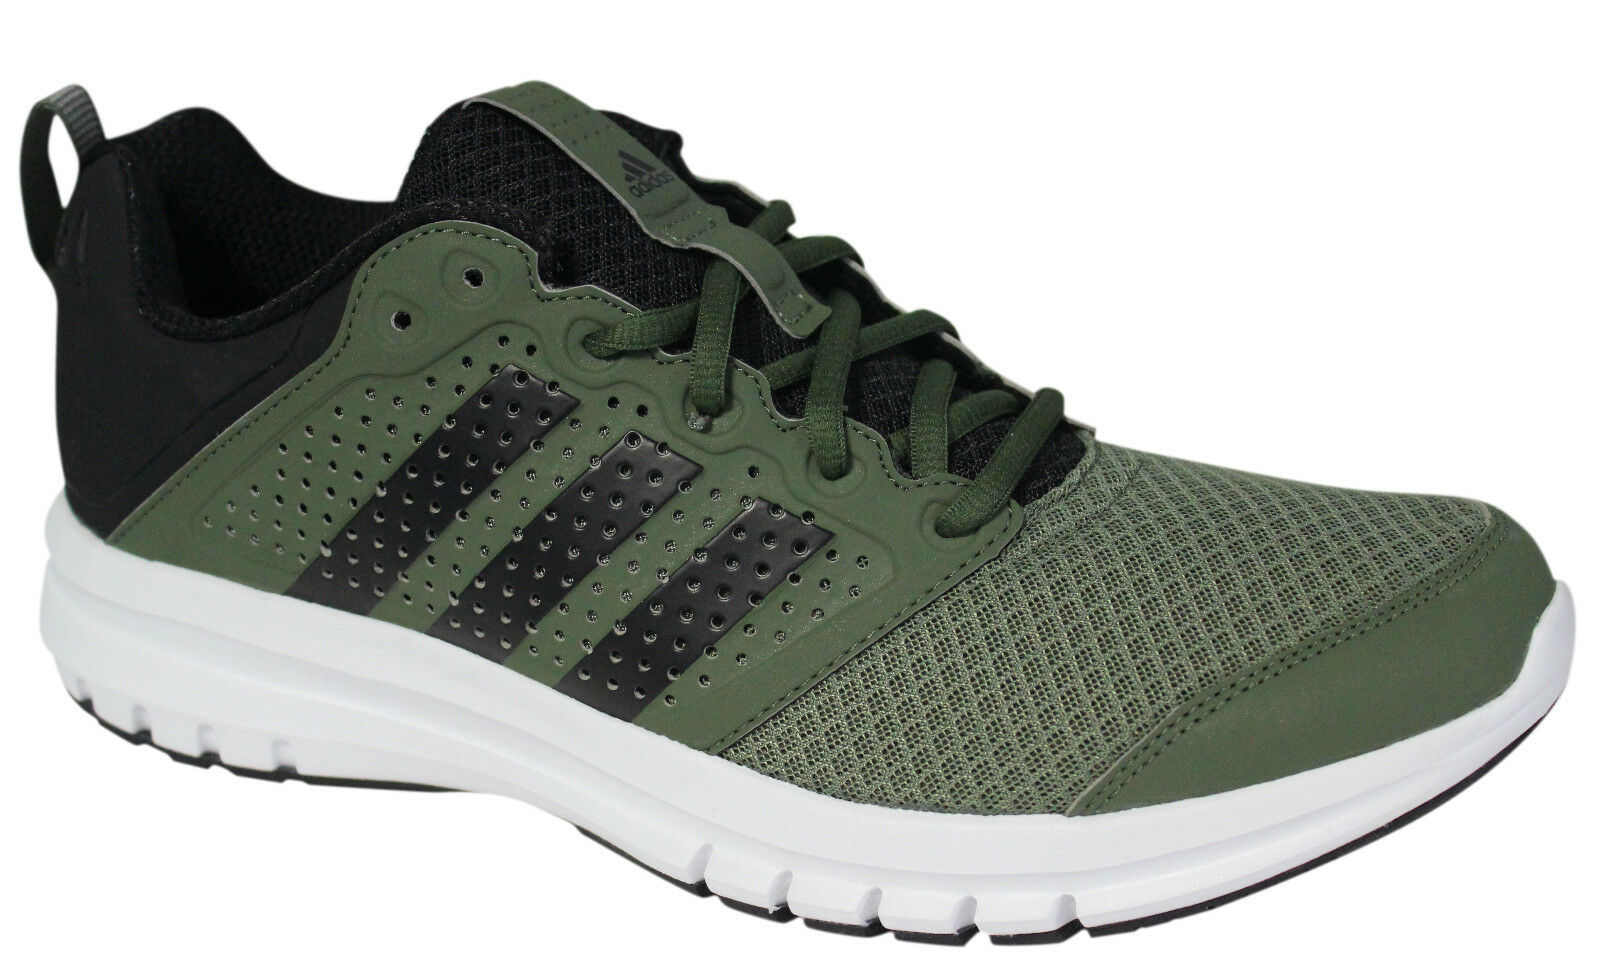 Adidas Sports Performance Madoru Mens Trainers Running Shoes Green B40363 D80